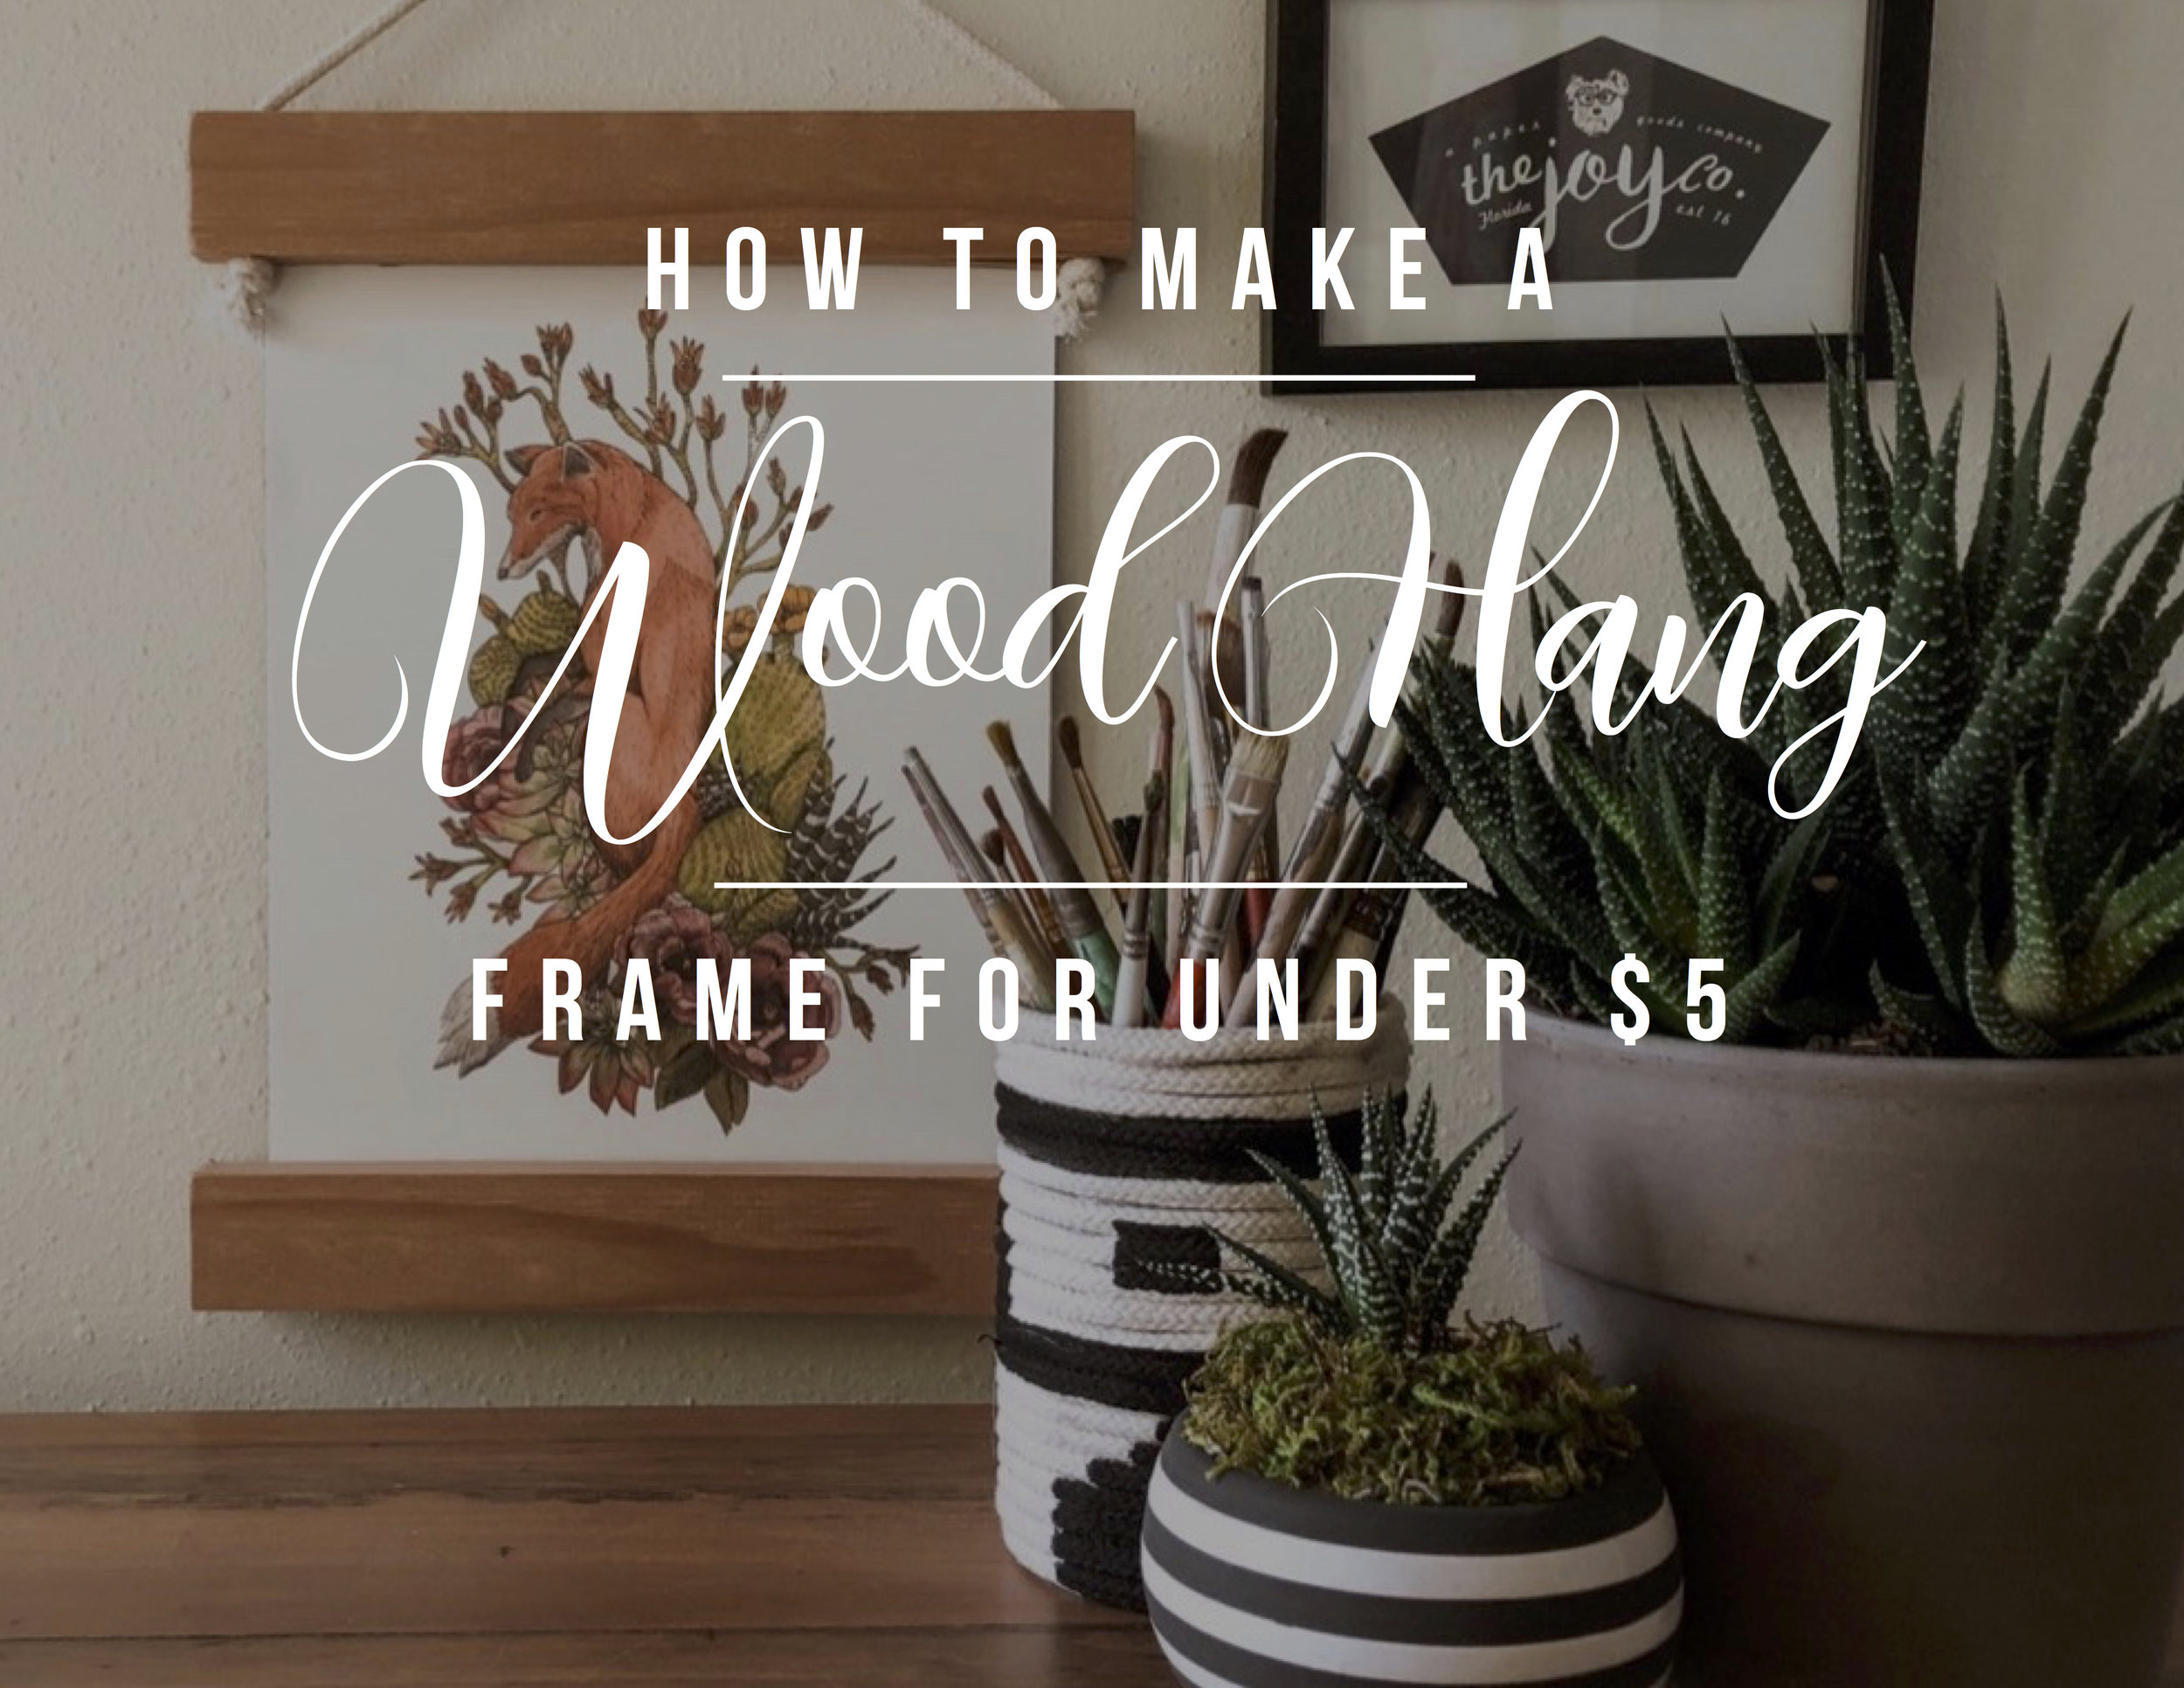 wood hang frame .jpg